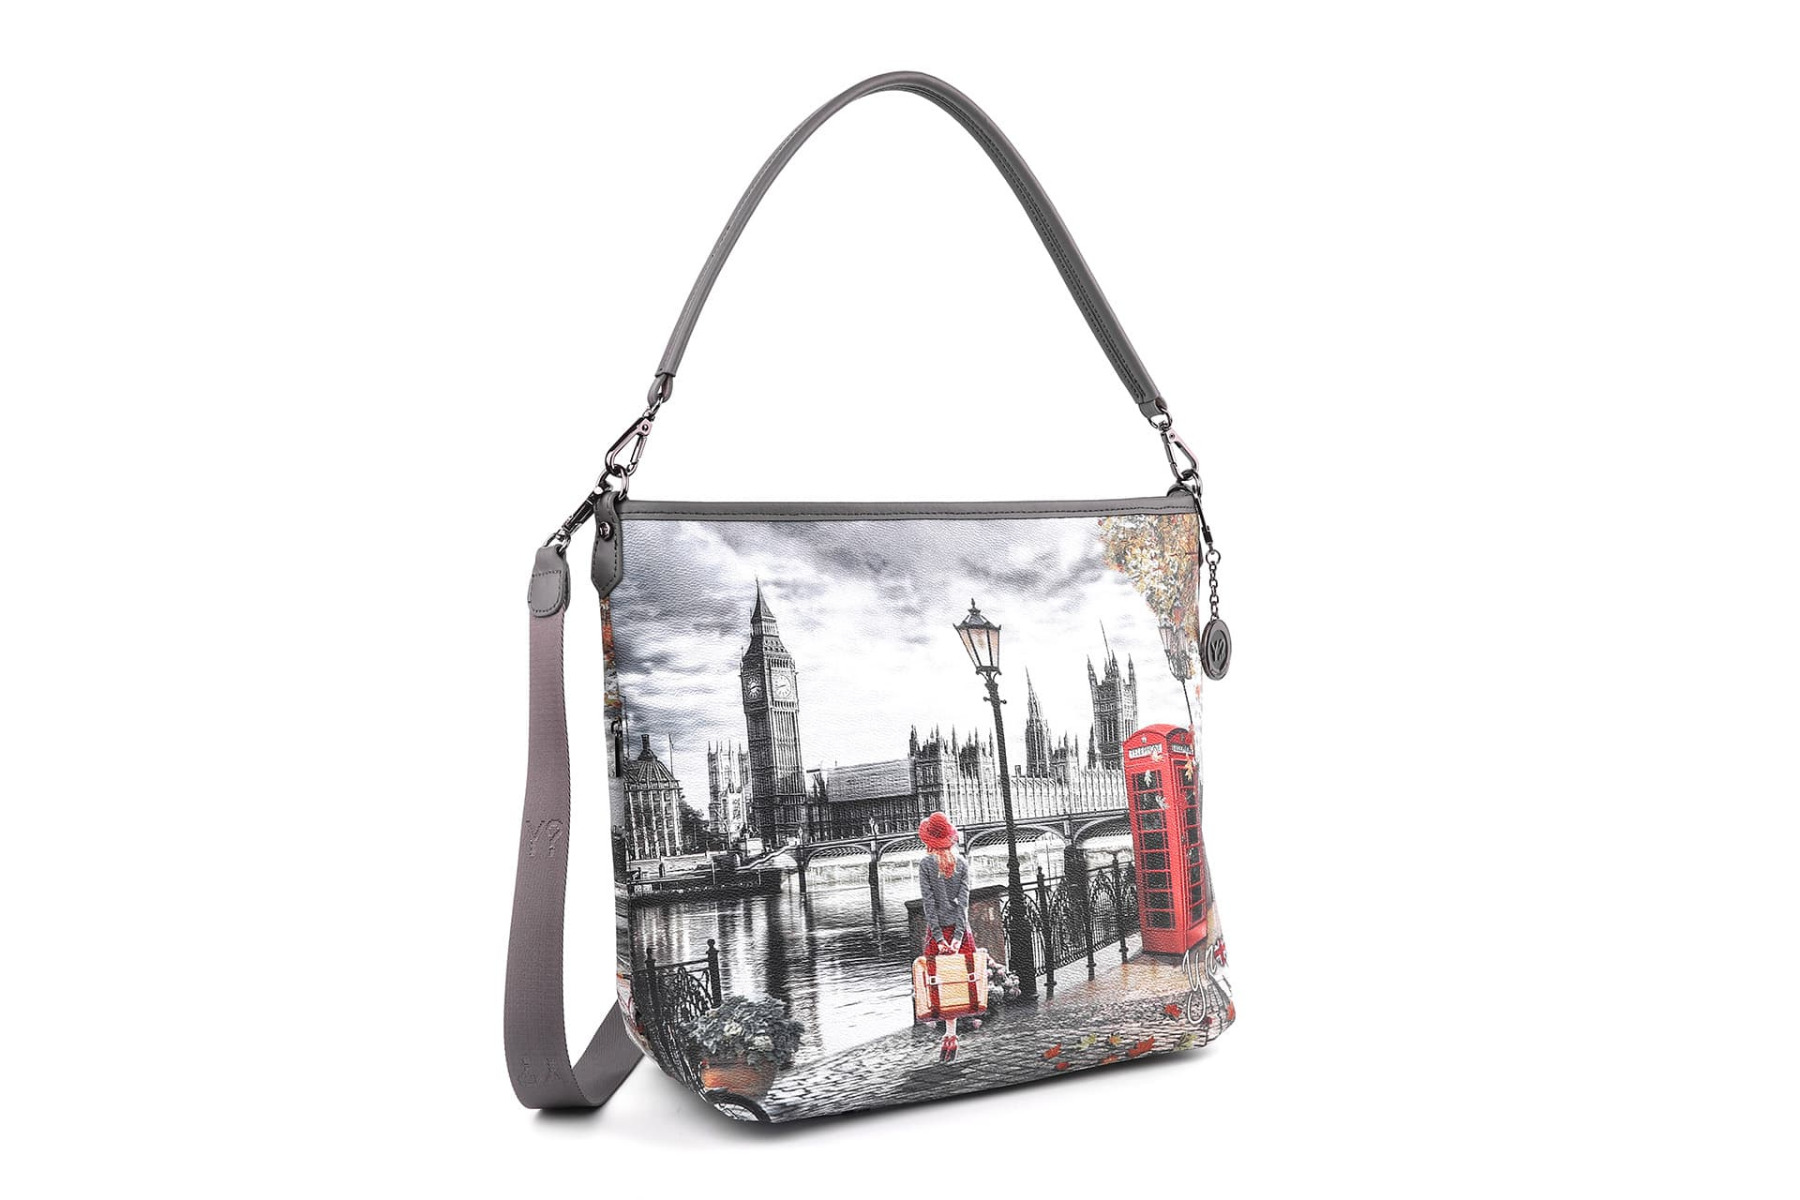 Borsa Donna Y NOT a Spalla con Tracolla K 349 Autumn In London